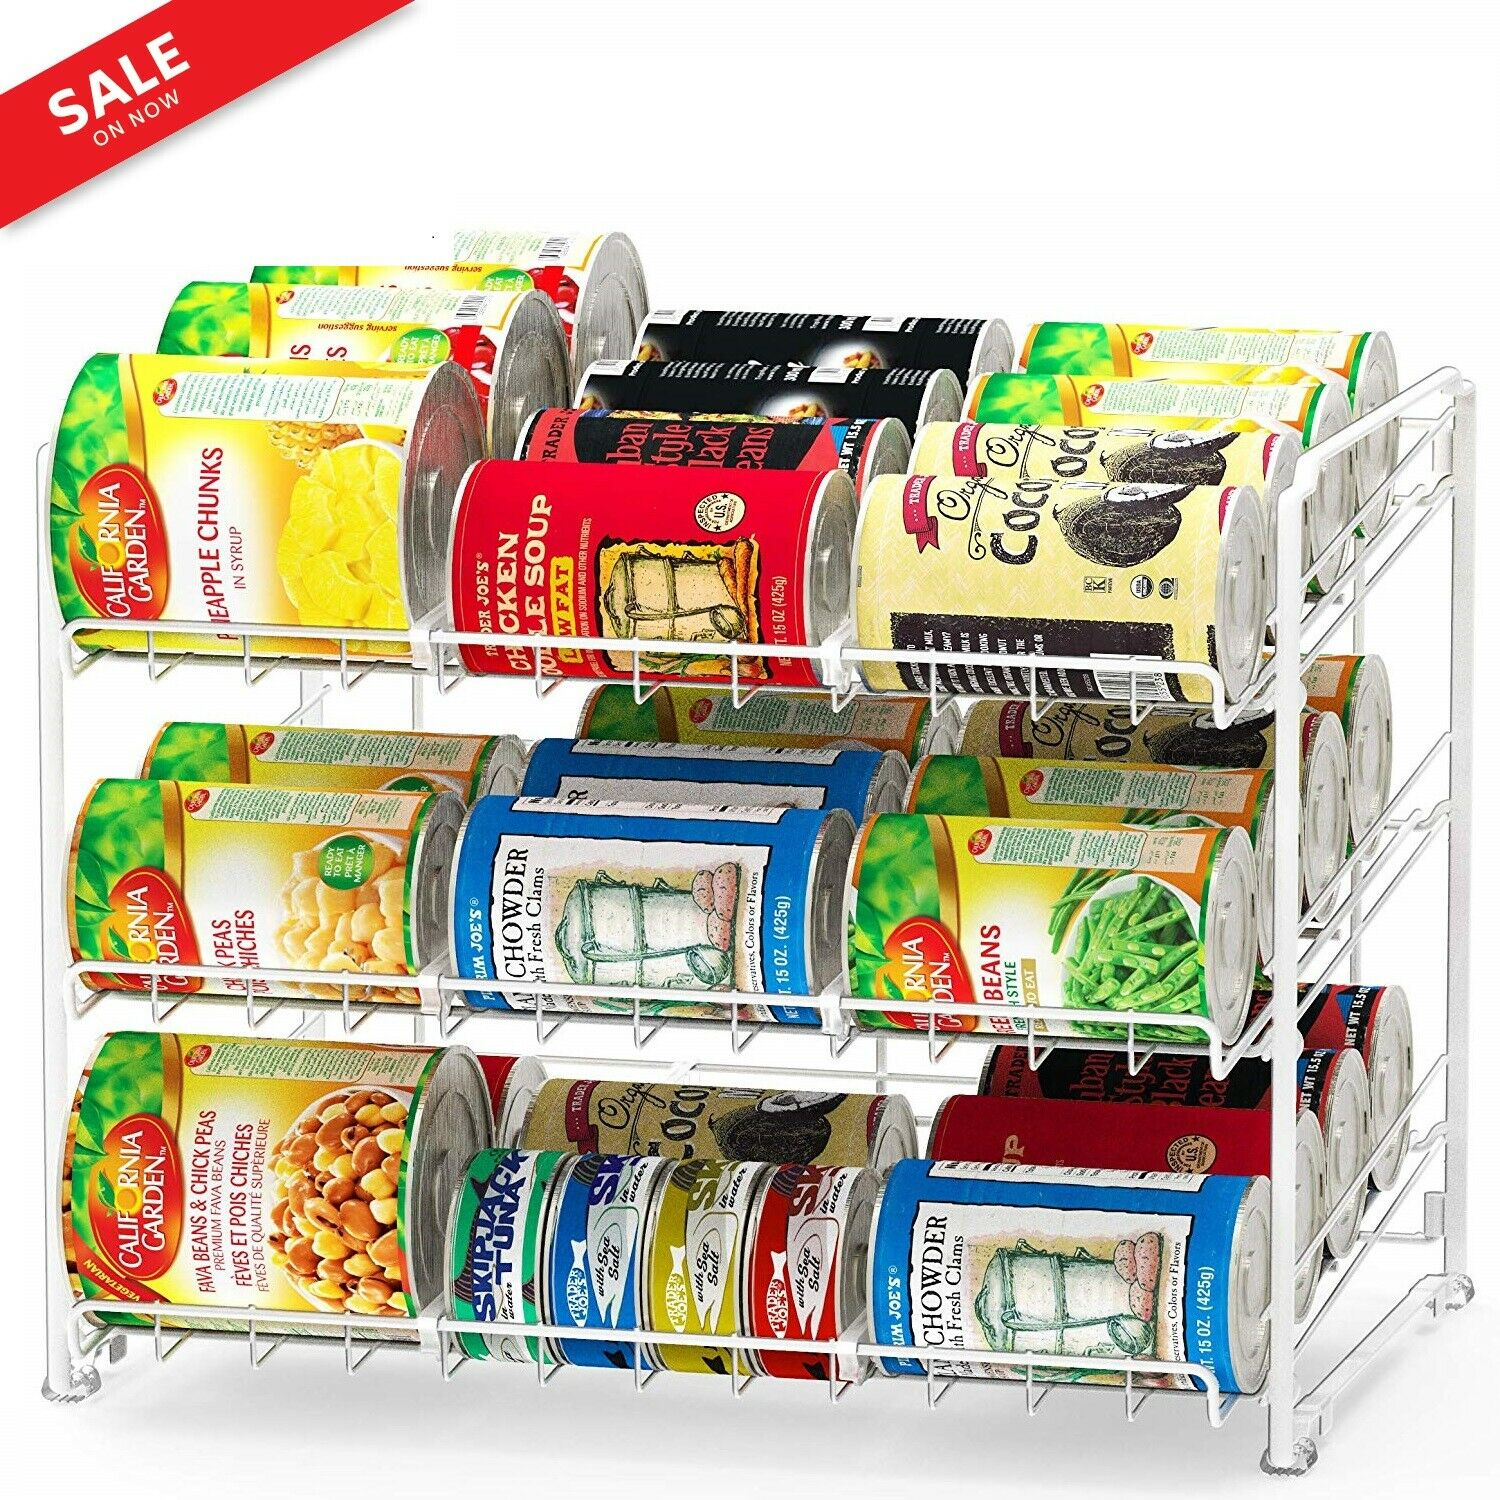 36 CANS STORAGE DISPENSER Food ORGANIZER Home CAN RACK Shelf Pantry STACKABLE 1